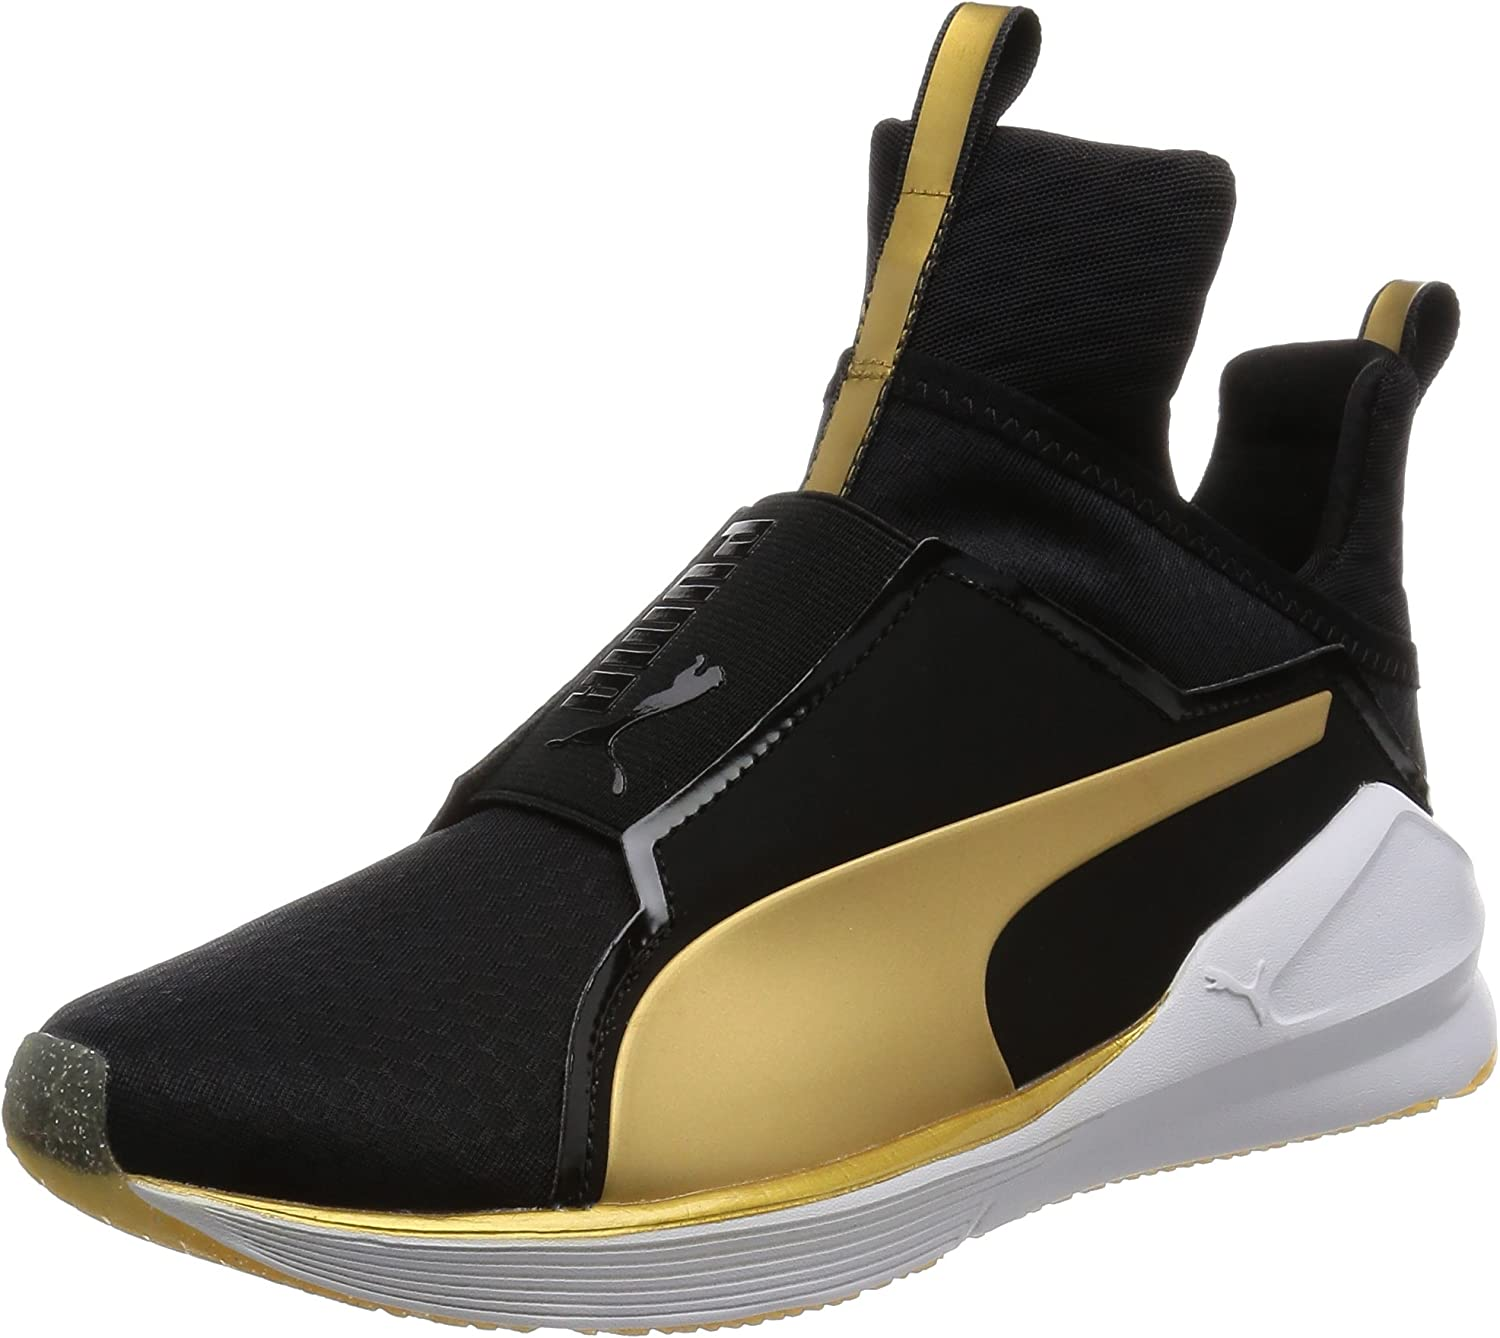 Puma Damen Fierce Gold Hohe Sneakers